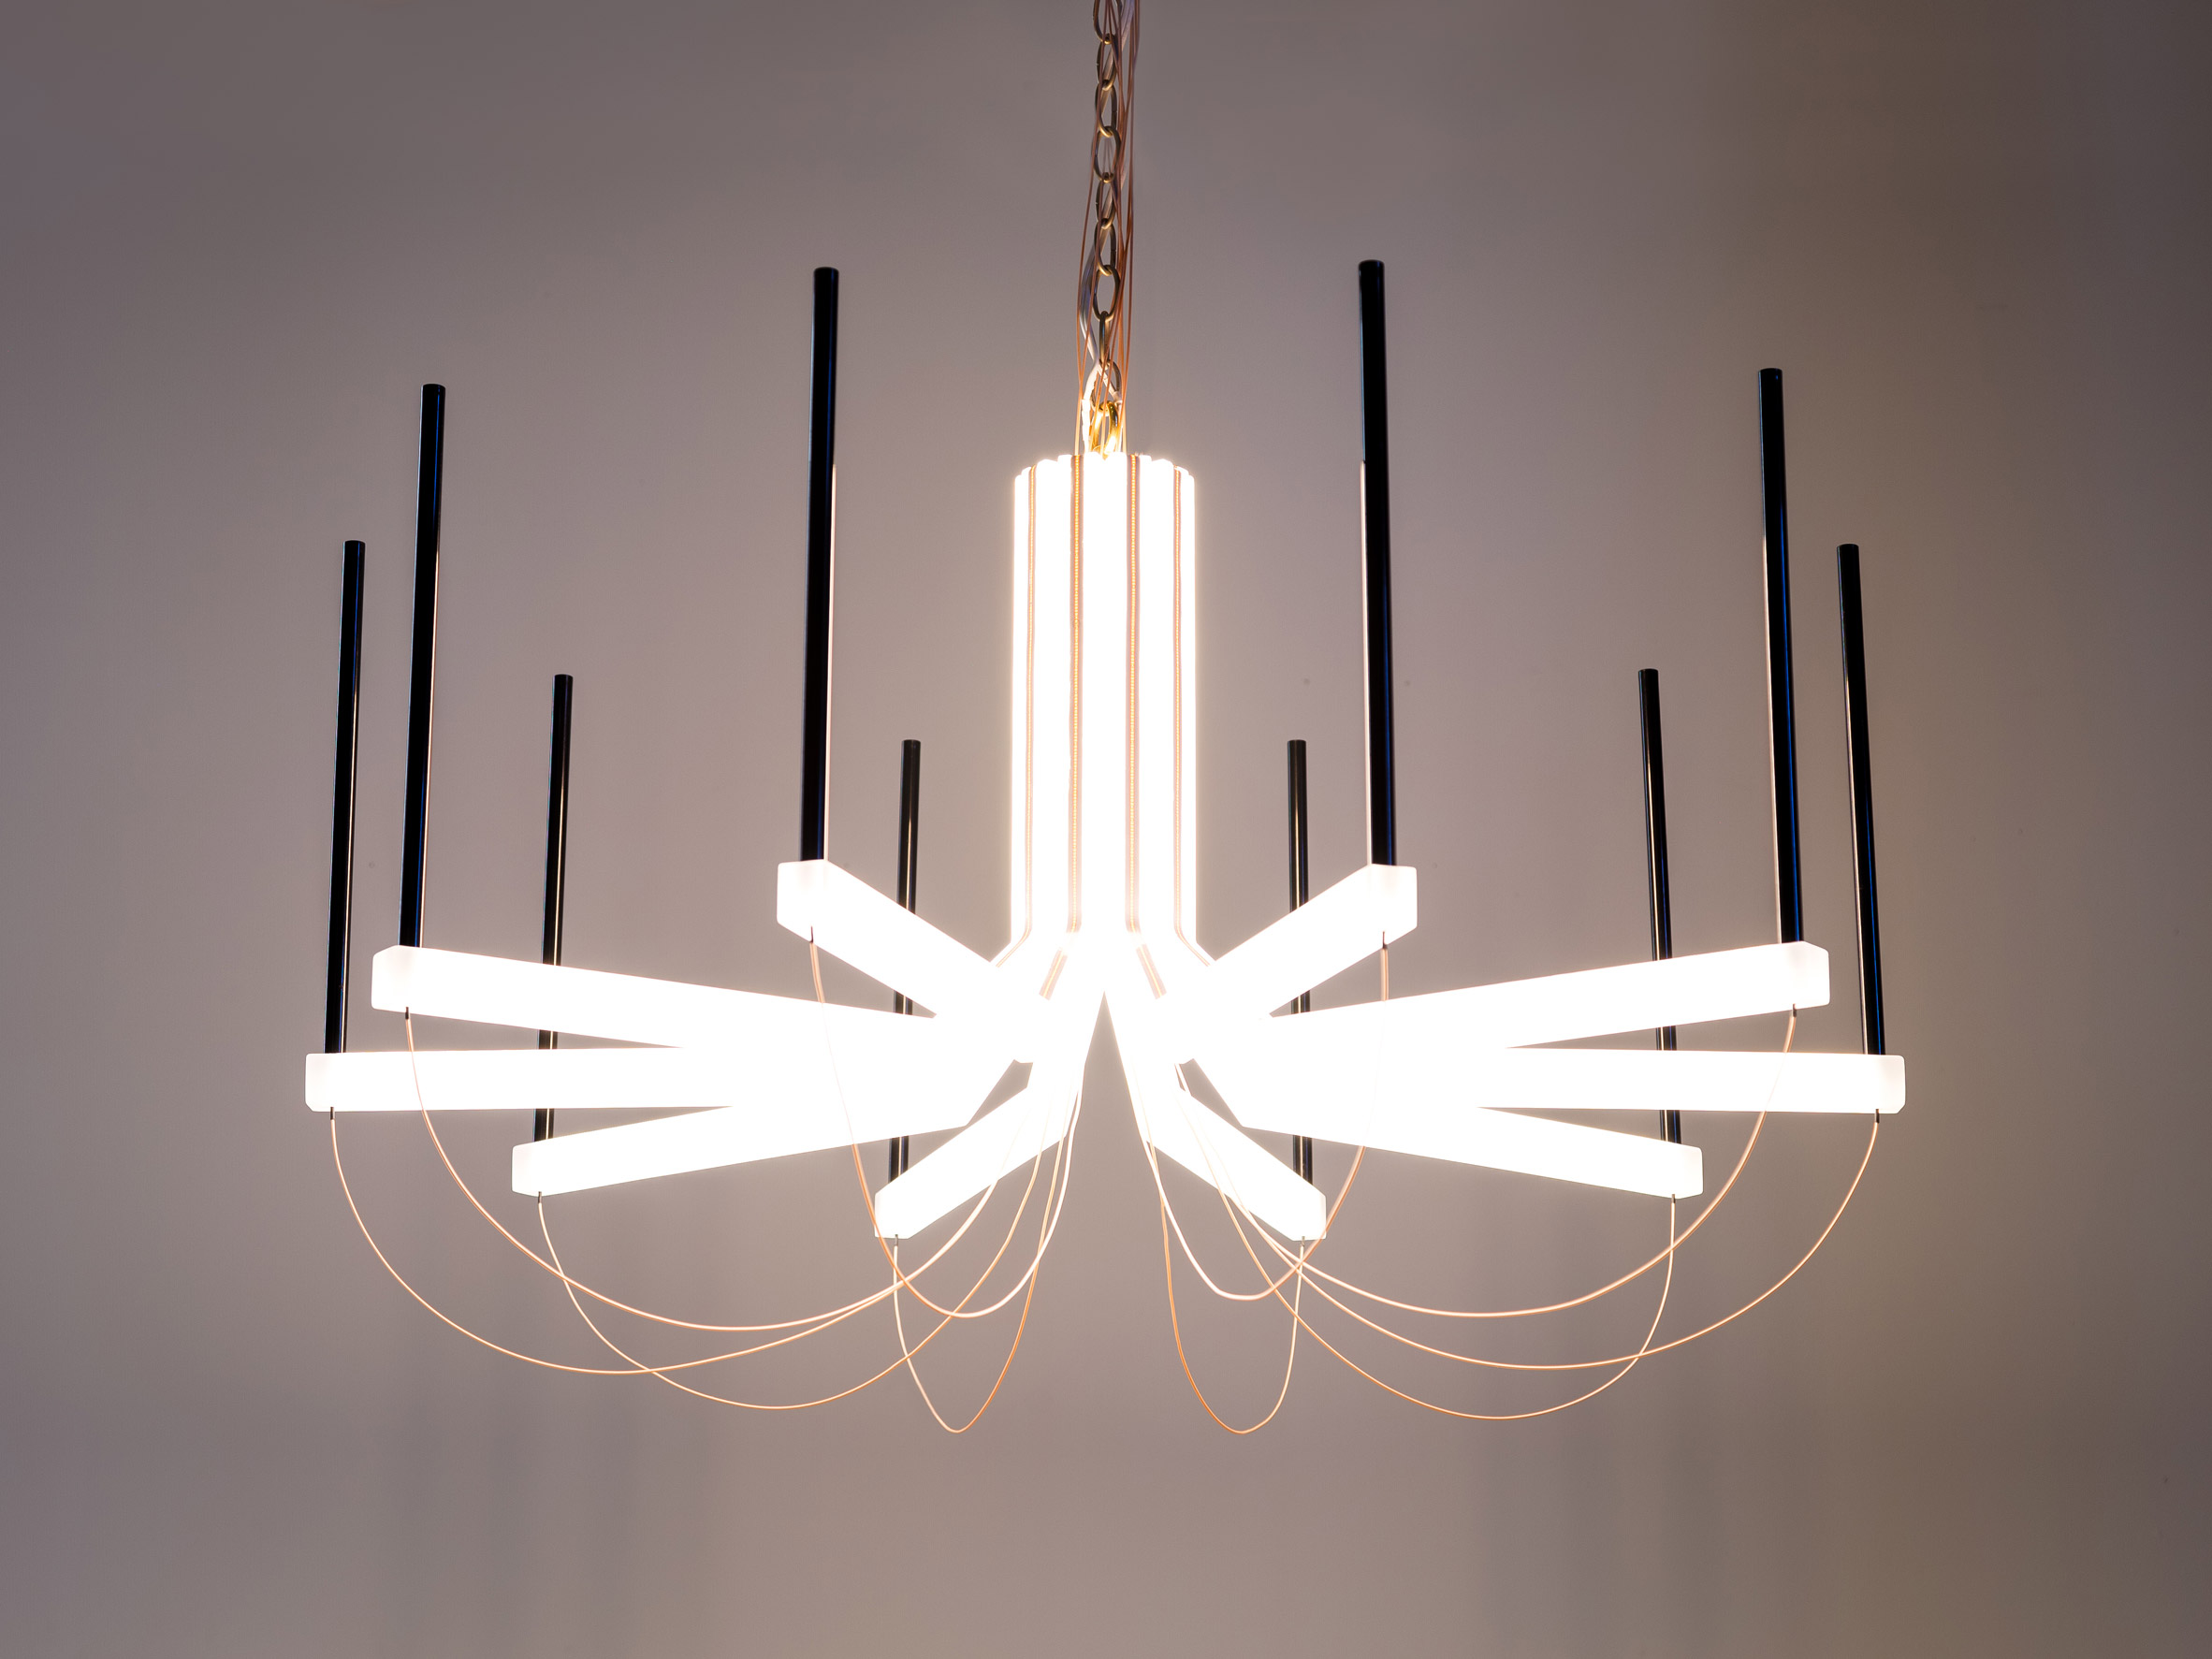 The chandelier was designed by Eric Forman